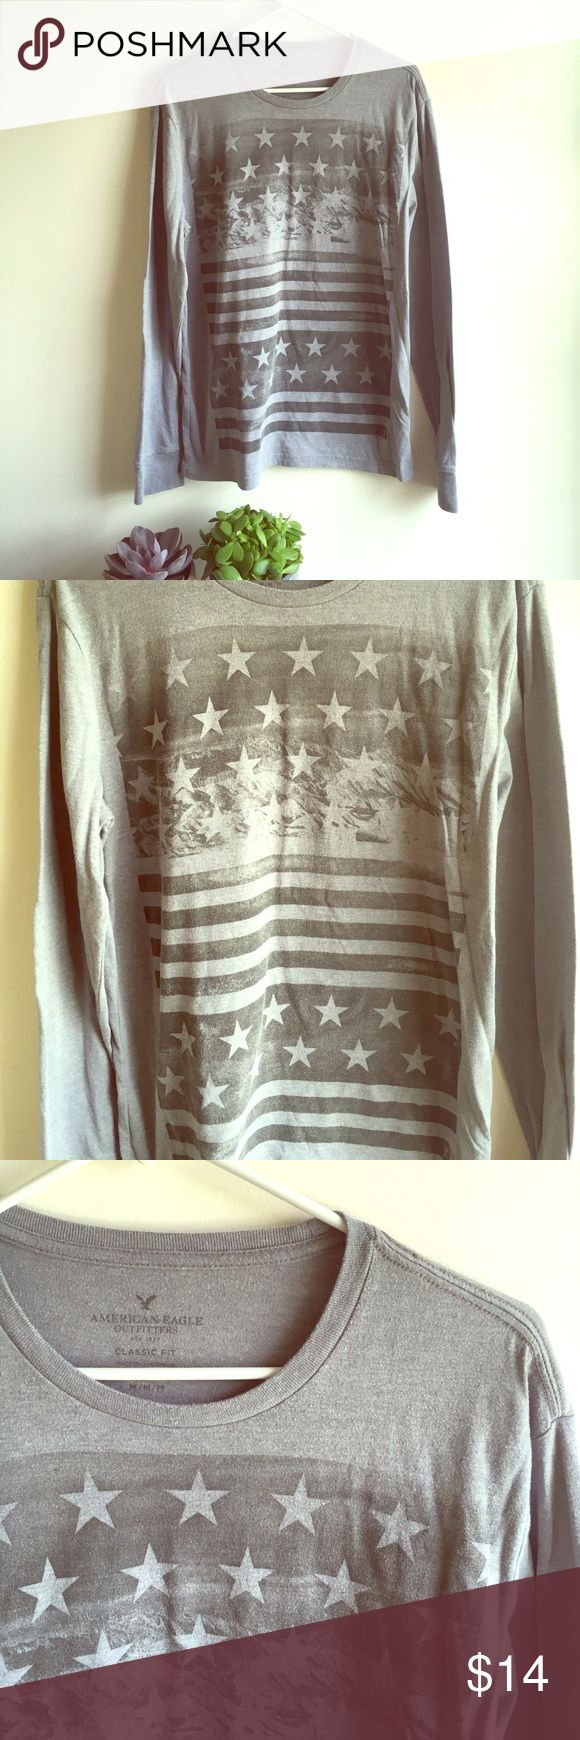 ⭐️American Eagle Men's American Flag TEE⭐️ ⭐️American Eagle Men's American Flag TEE⭐️ Size Medium. Long Sleeve Tee. American Eagle Brand. Great condition. United States flag on the front. Next day shipping. All sales are final. American Eagle Outfitters Shirts Tees - Long Sleeve